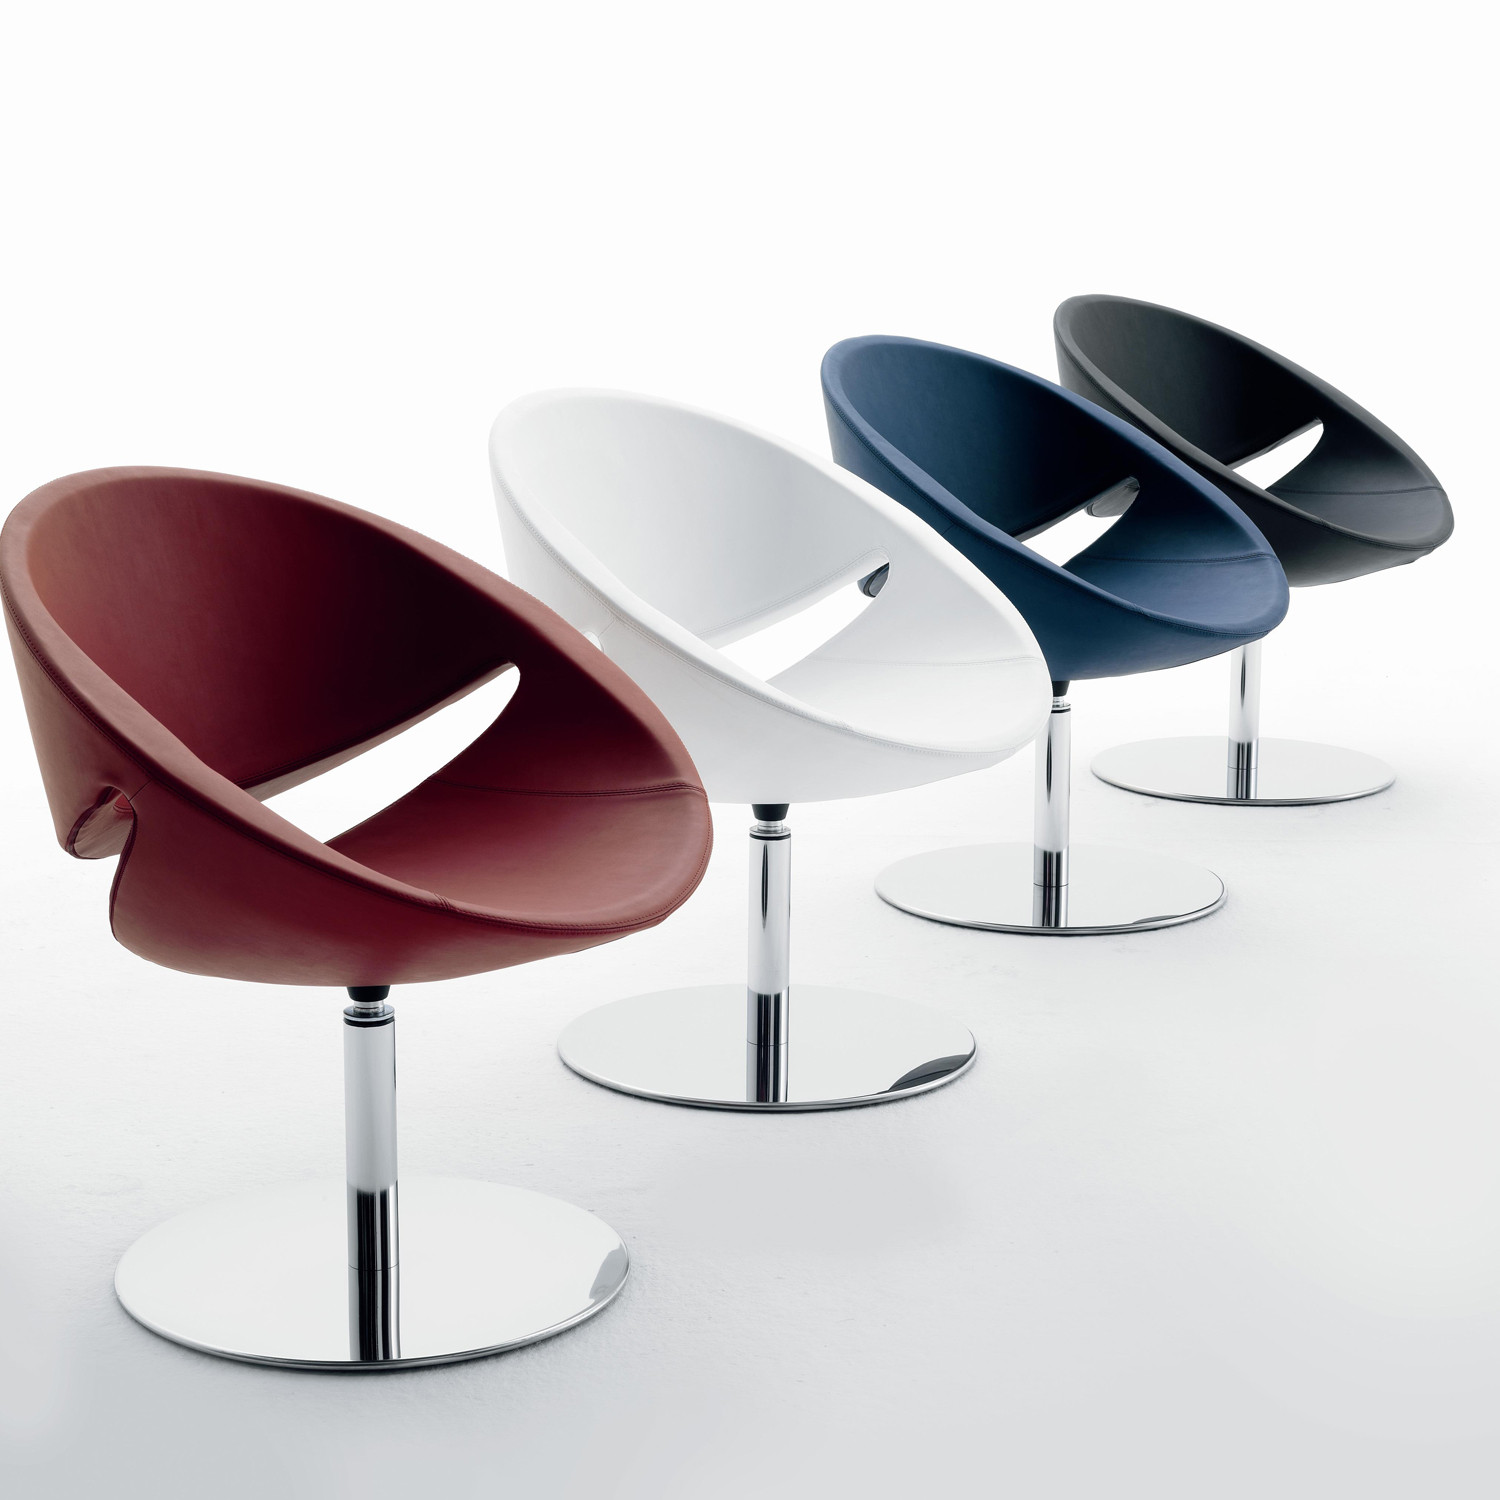 Mya Chairs are available in a wide range of colours